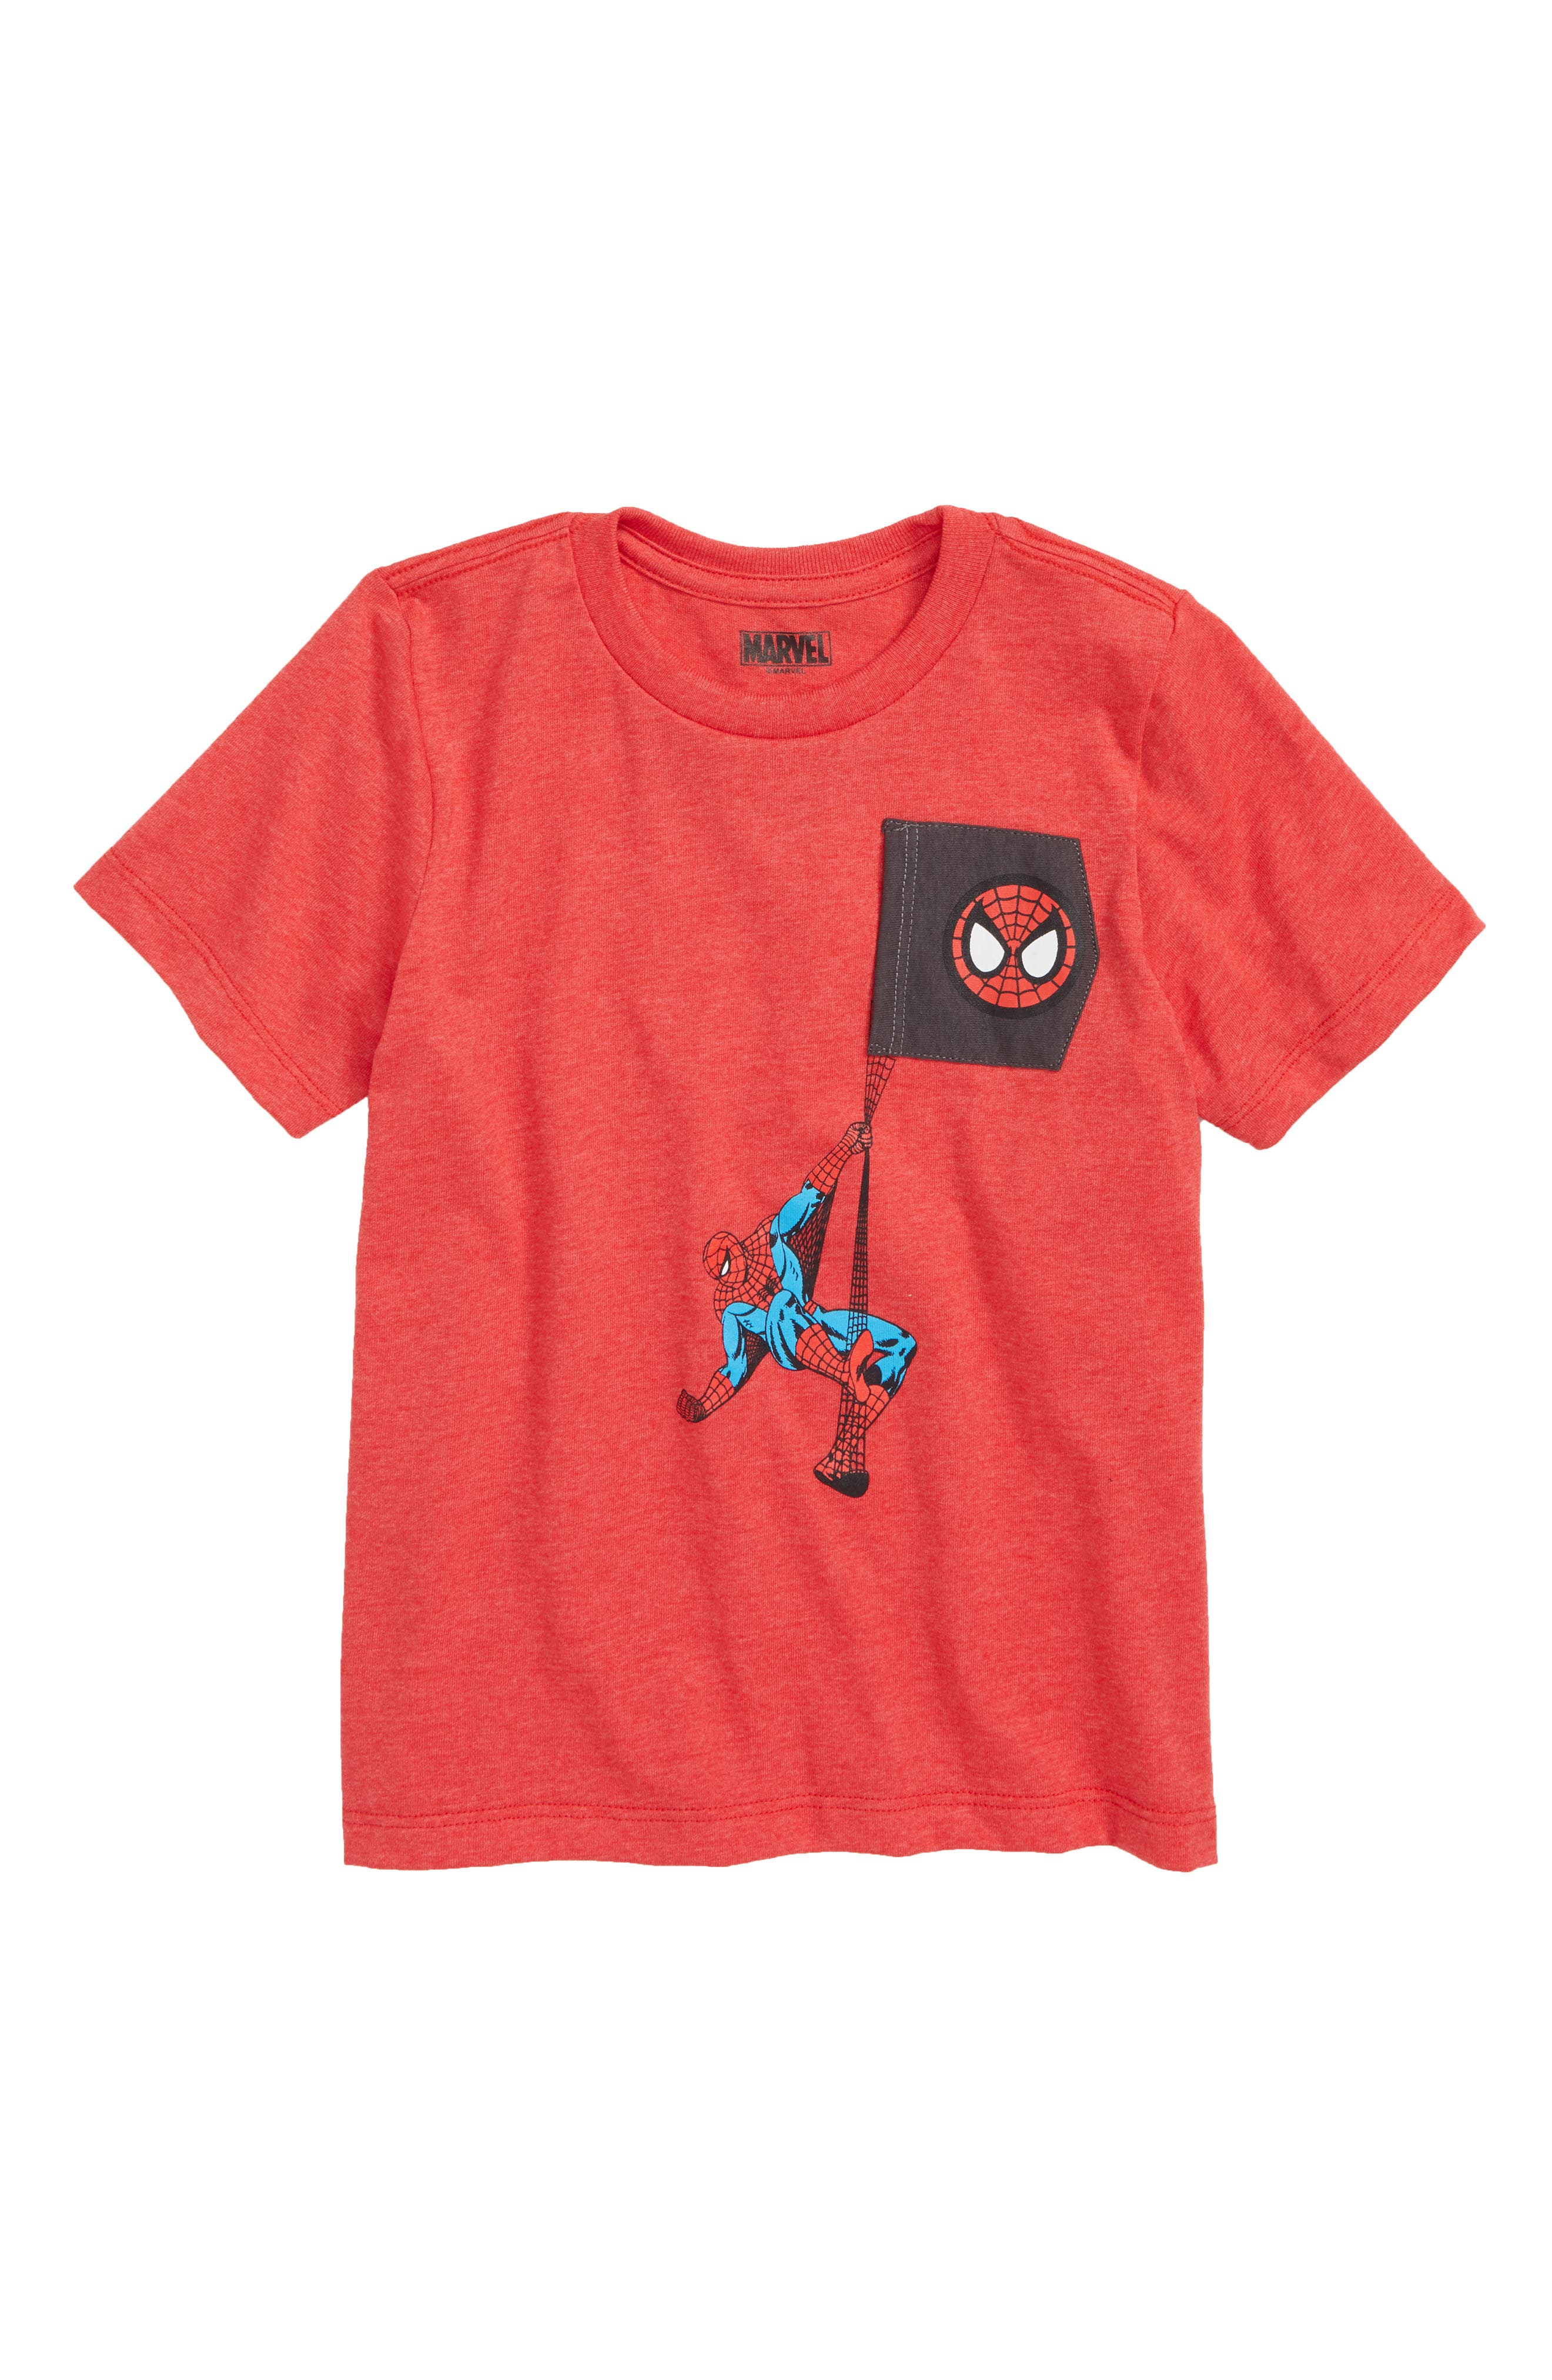 Spiderman Graphic T-Shirt,                             Main thumbnail 1, color,                             HEATHER RED